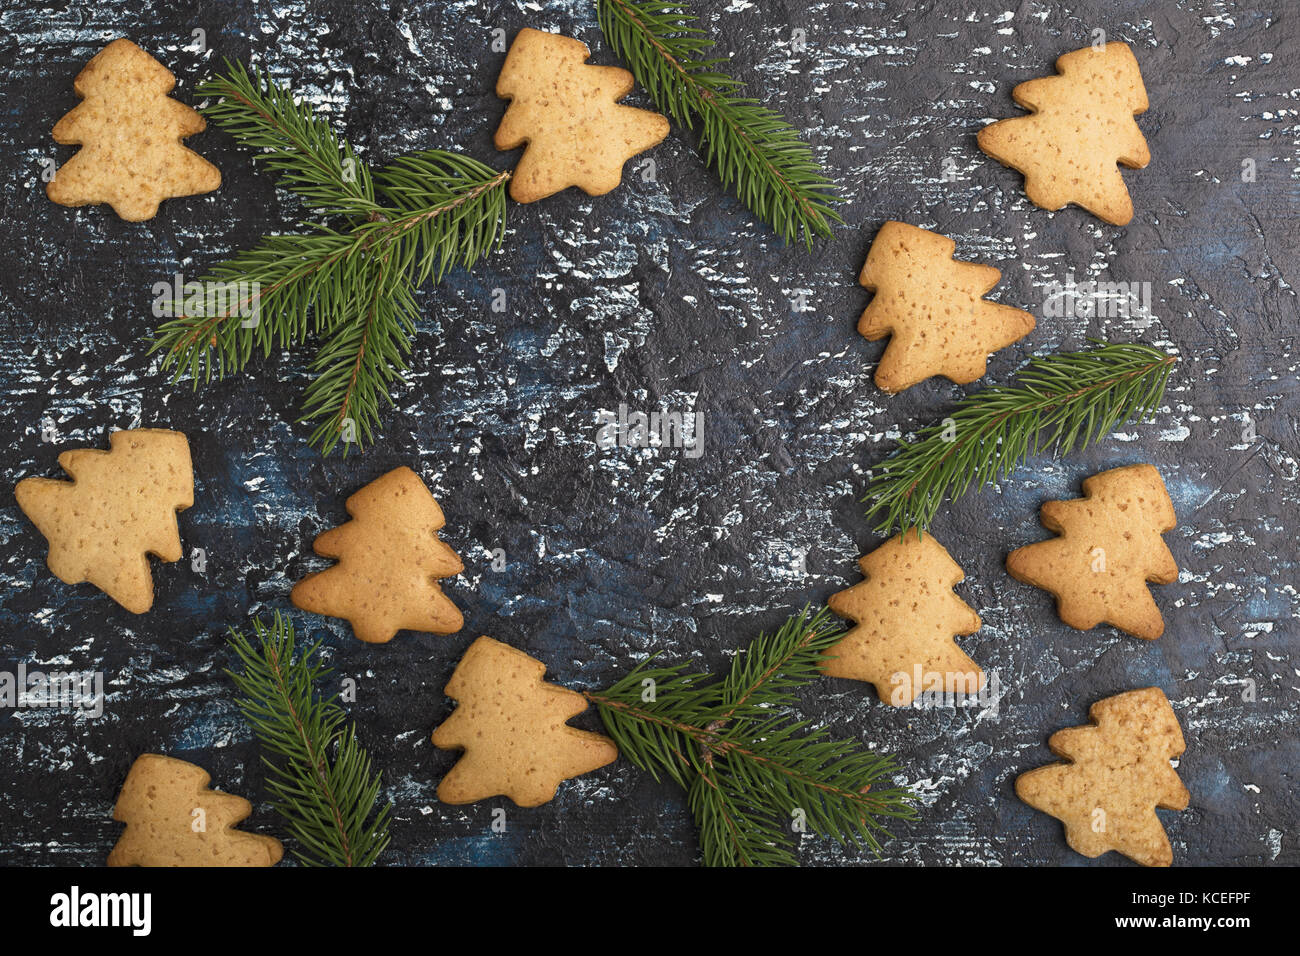 Christmas gingerbread  cookies  background viewed from above - Stock Image